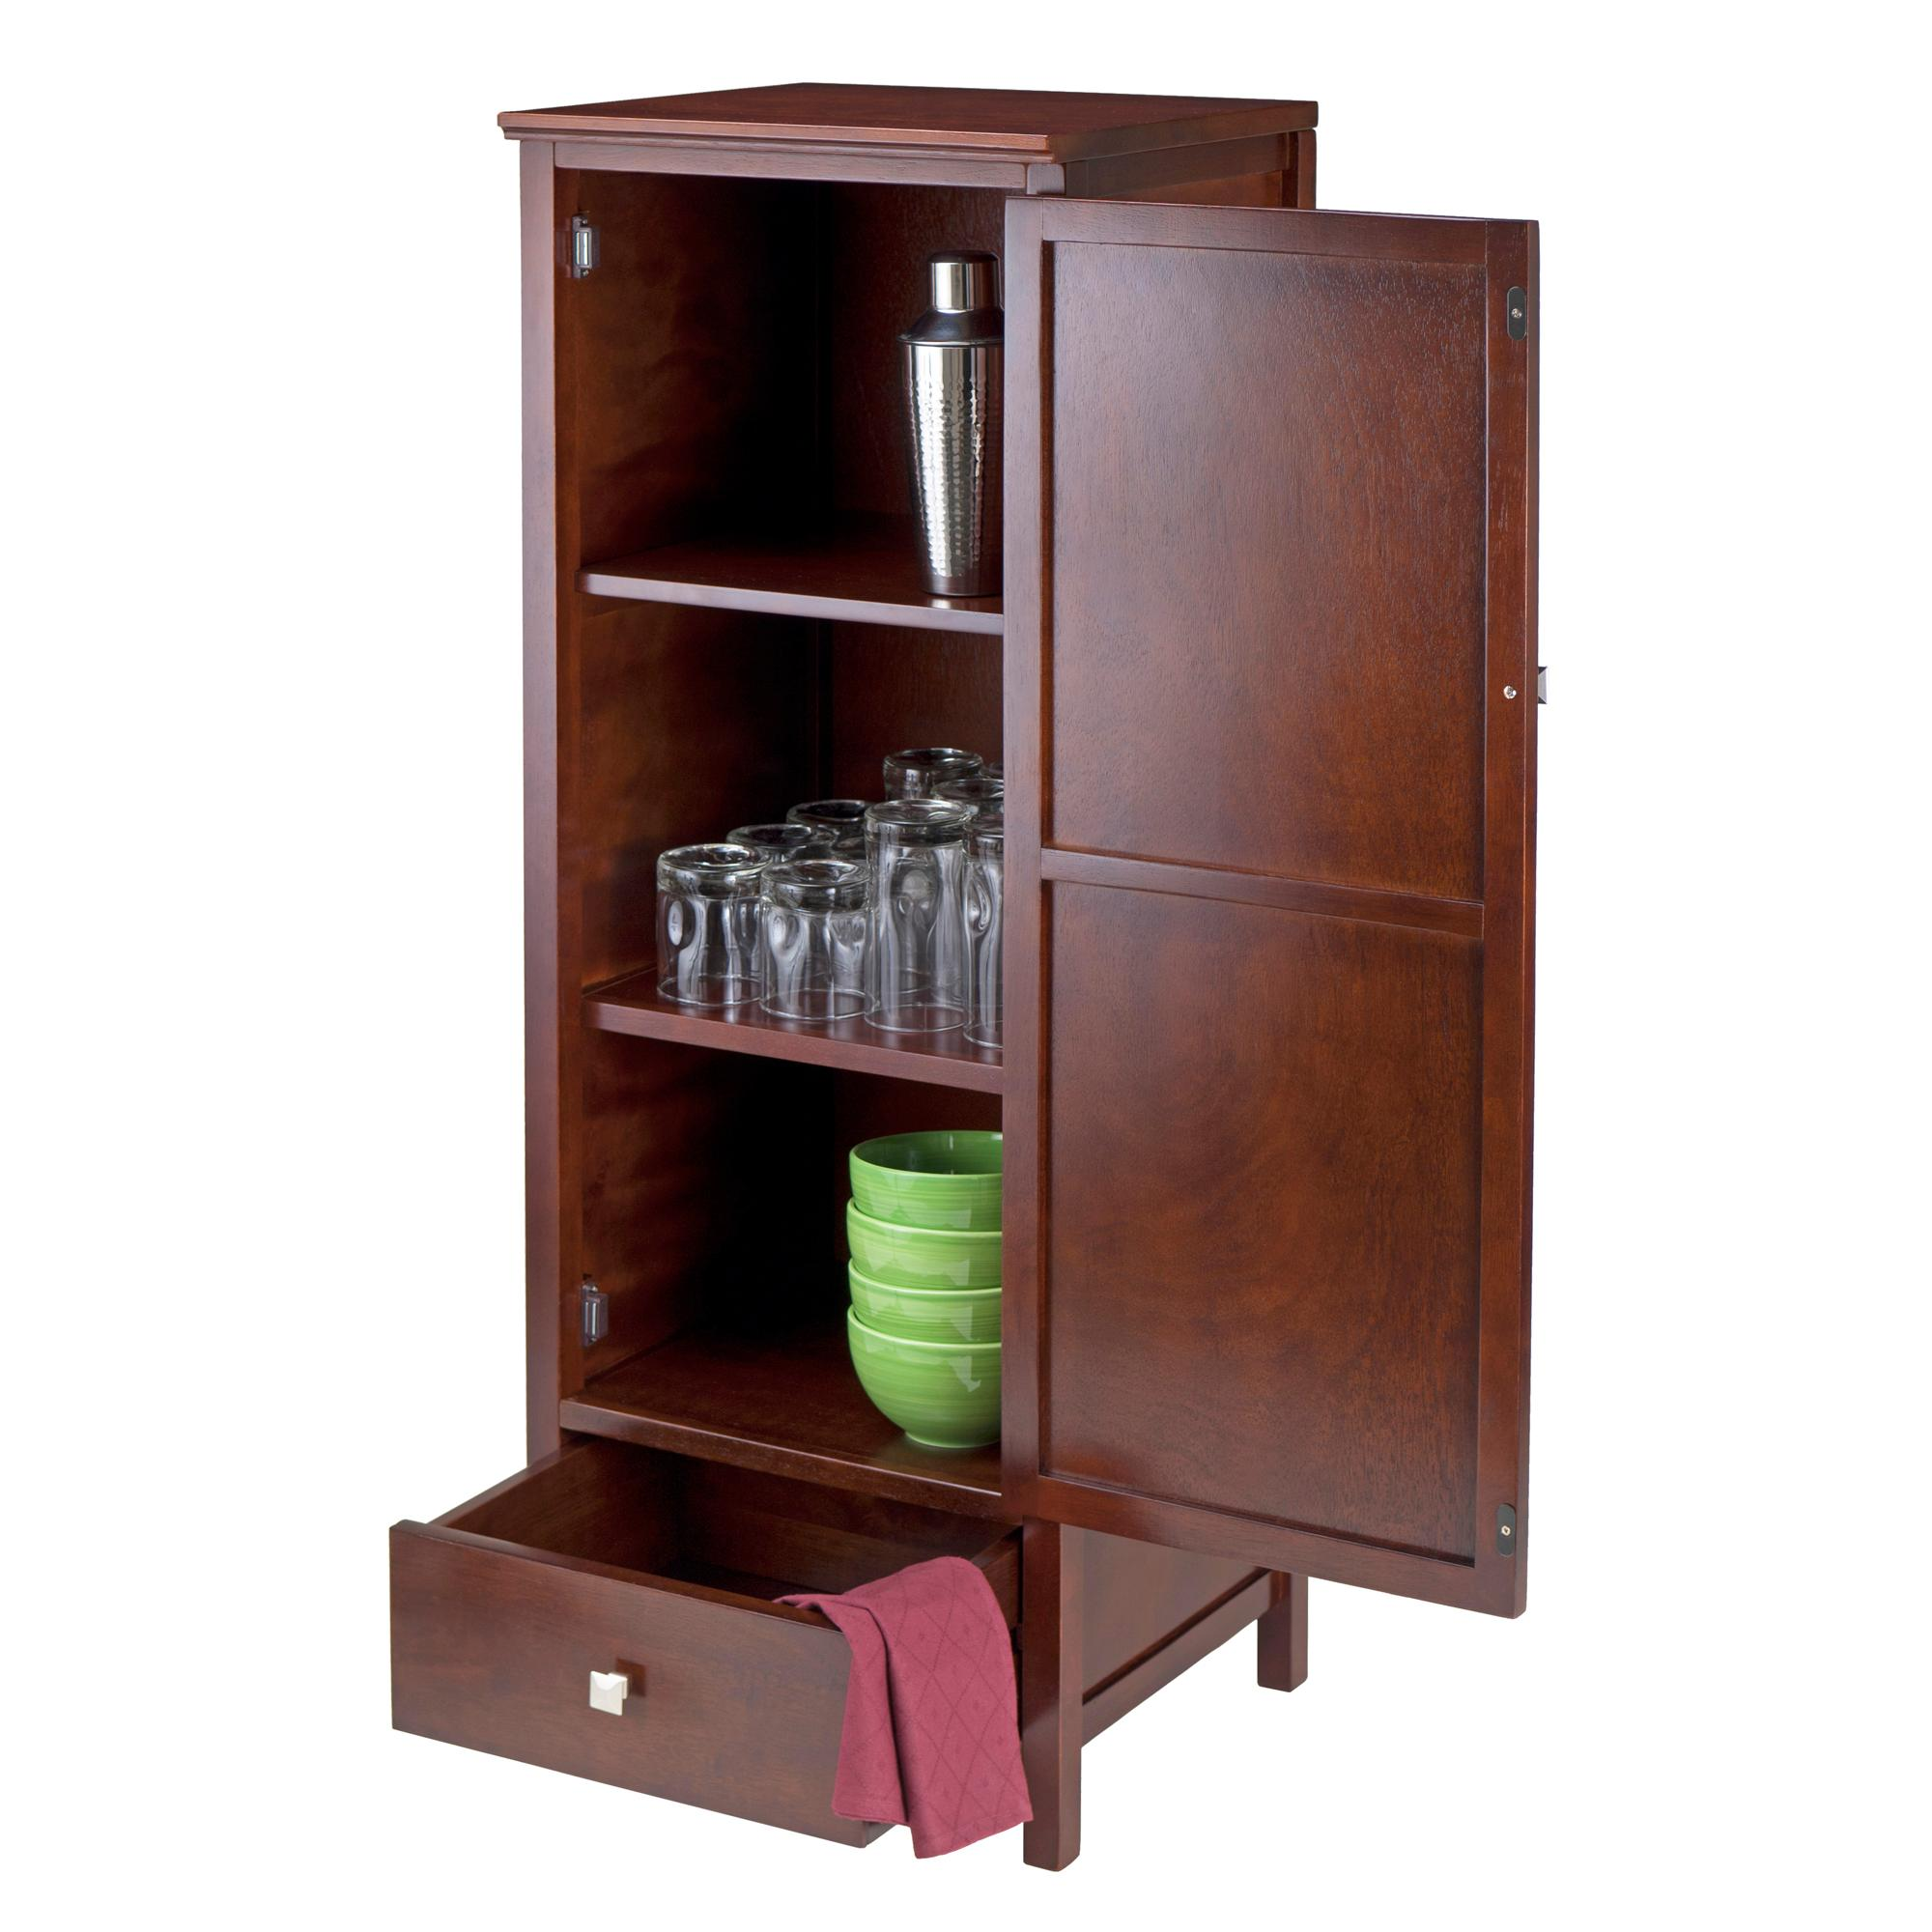 Amazon.com: Winsome Wood Brooke Jelly Cupboard with Door and Drawer